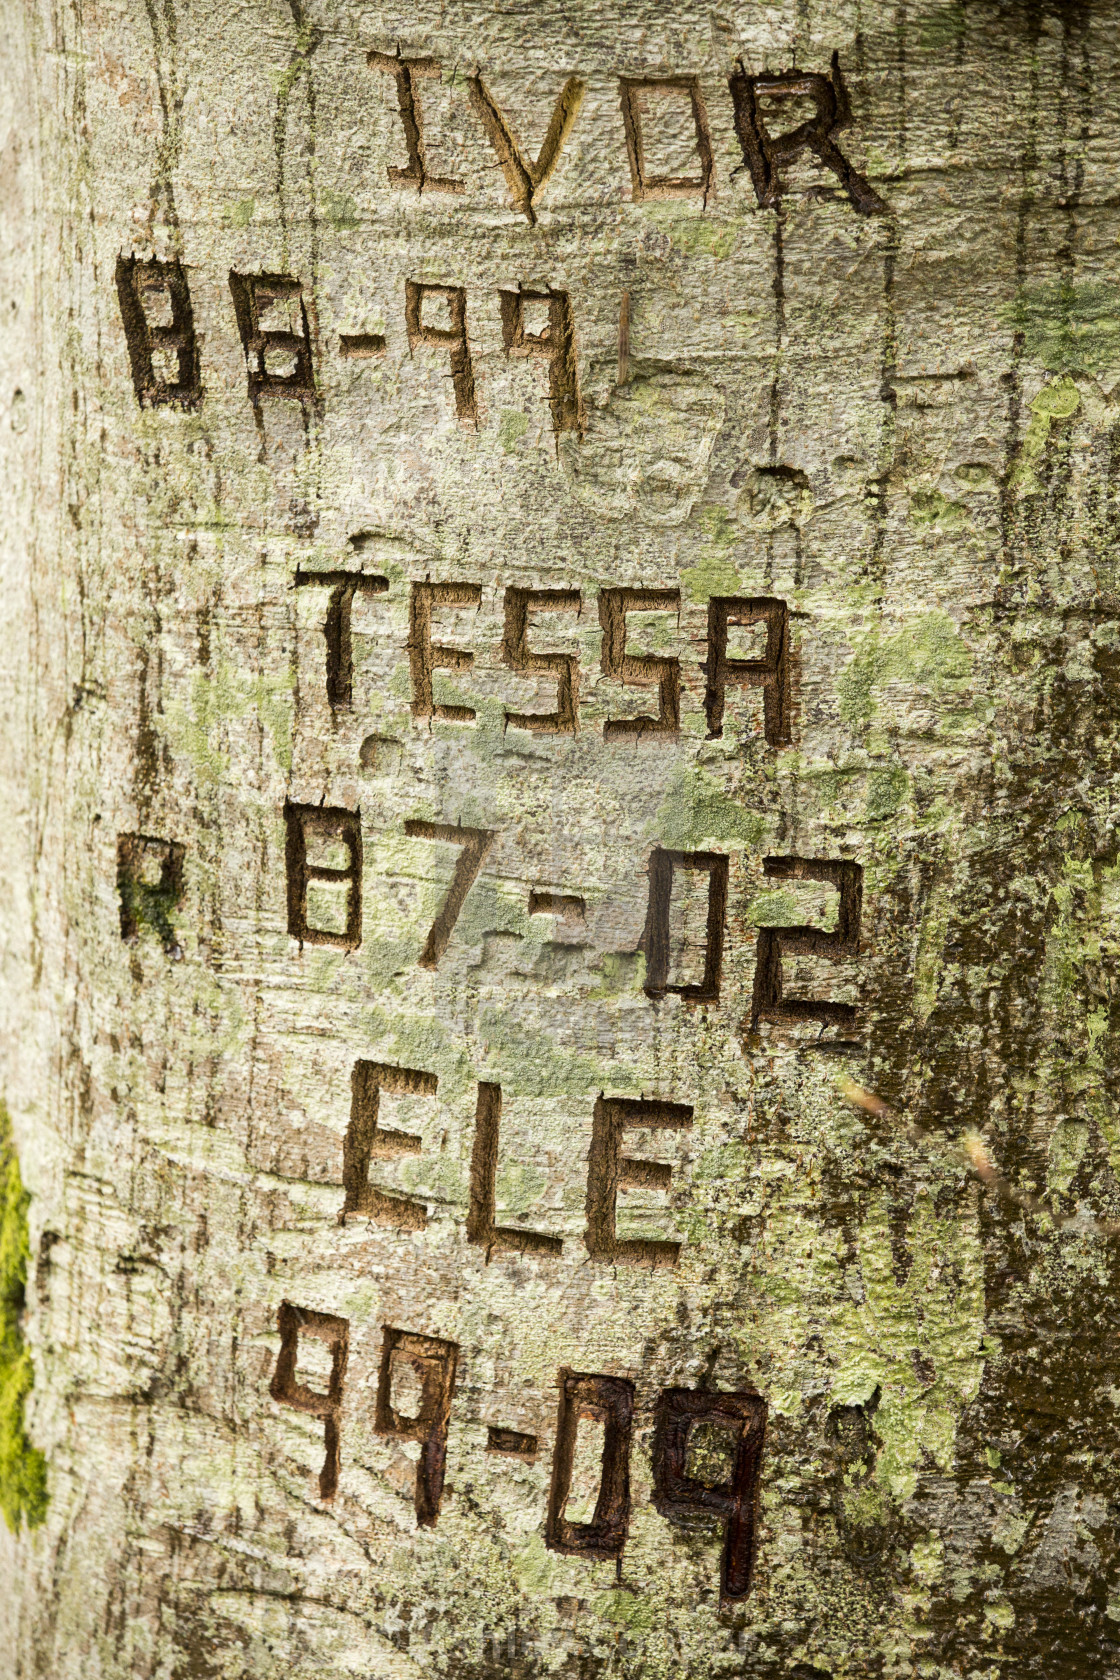 Names Carved Into A Tree Trunk By The Falls Of Acharn Near Loch Tay